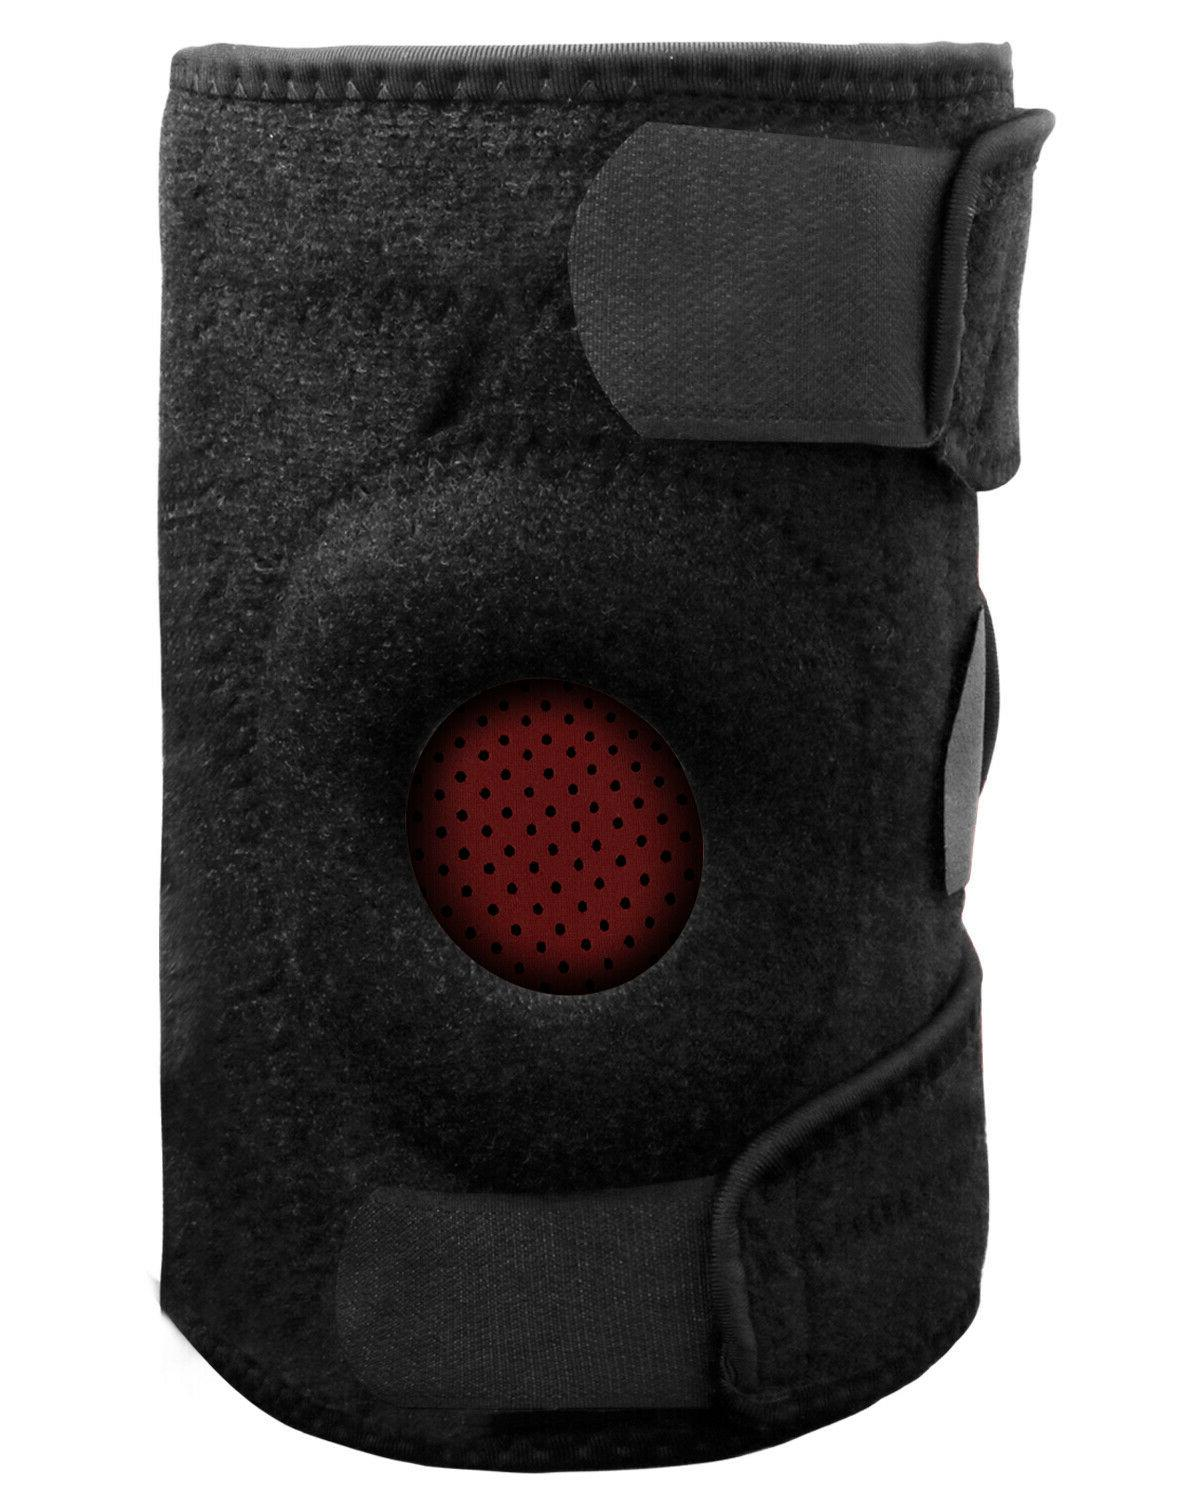 Knee Brace Sleeve Leg Stabilizer For Arthritis Pain/Running/Gym